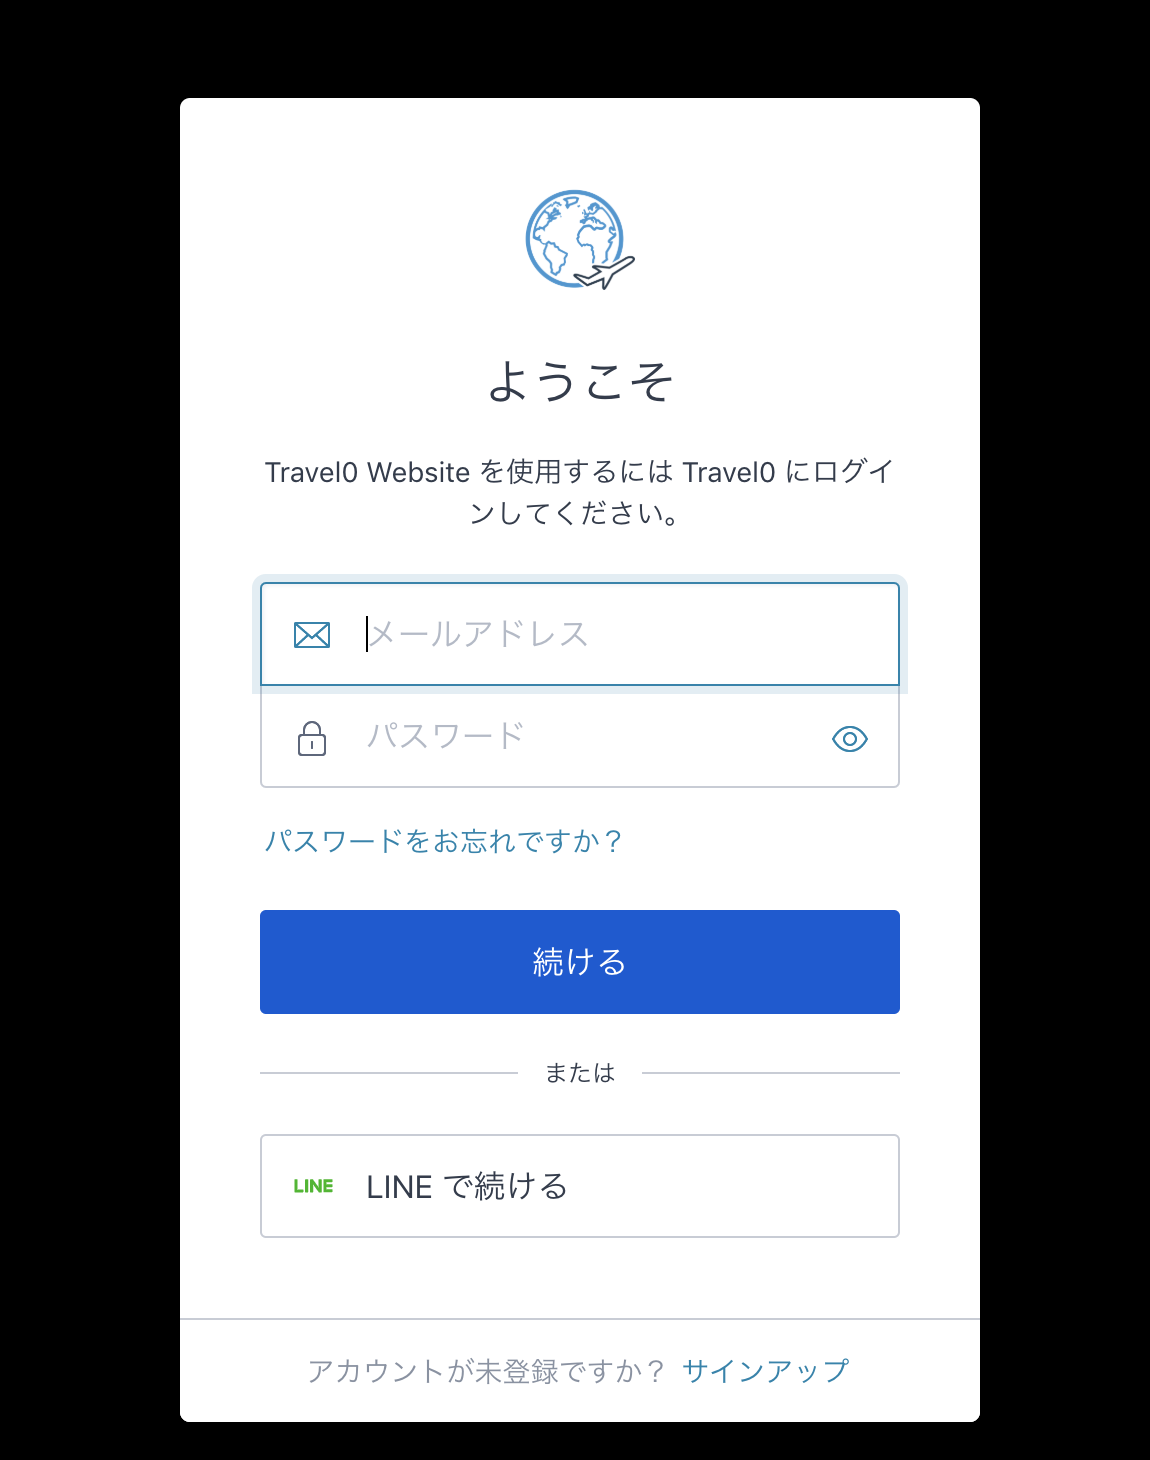 Login screen in Japanese with LINE login